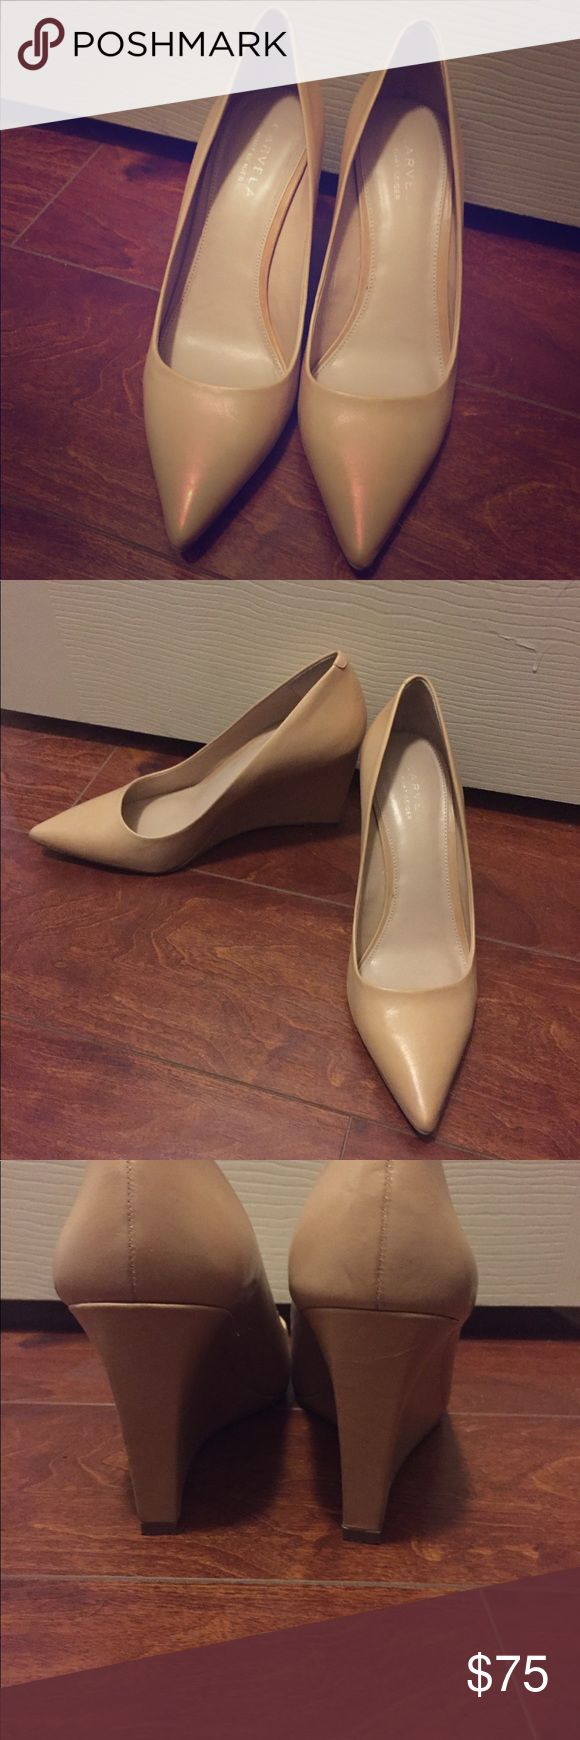 """Fabulous Nude Shoes Size 38 Pointy Wedge Beautiful nude (cream/tan, not rosey) Size 8 US. Fits like a size 7.5 (marked size 38) Heel is 3.5"""" tall Very good used condition. Clean. Light signs of use. Carvela Shoes Wedges"""